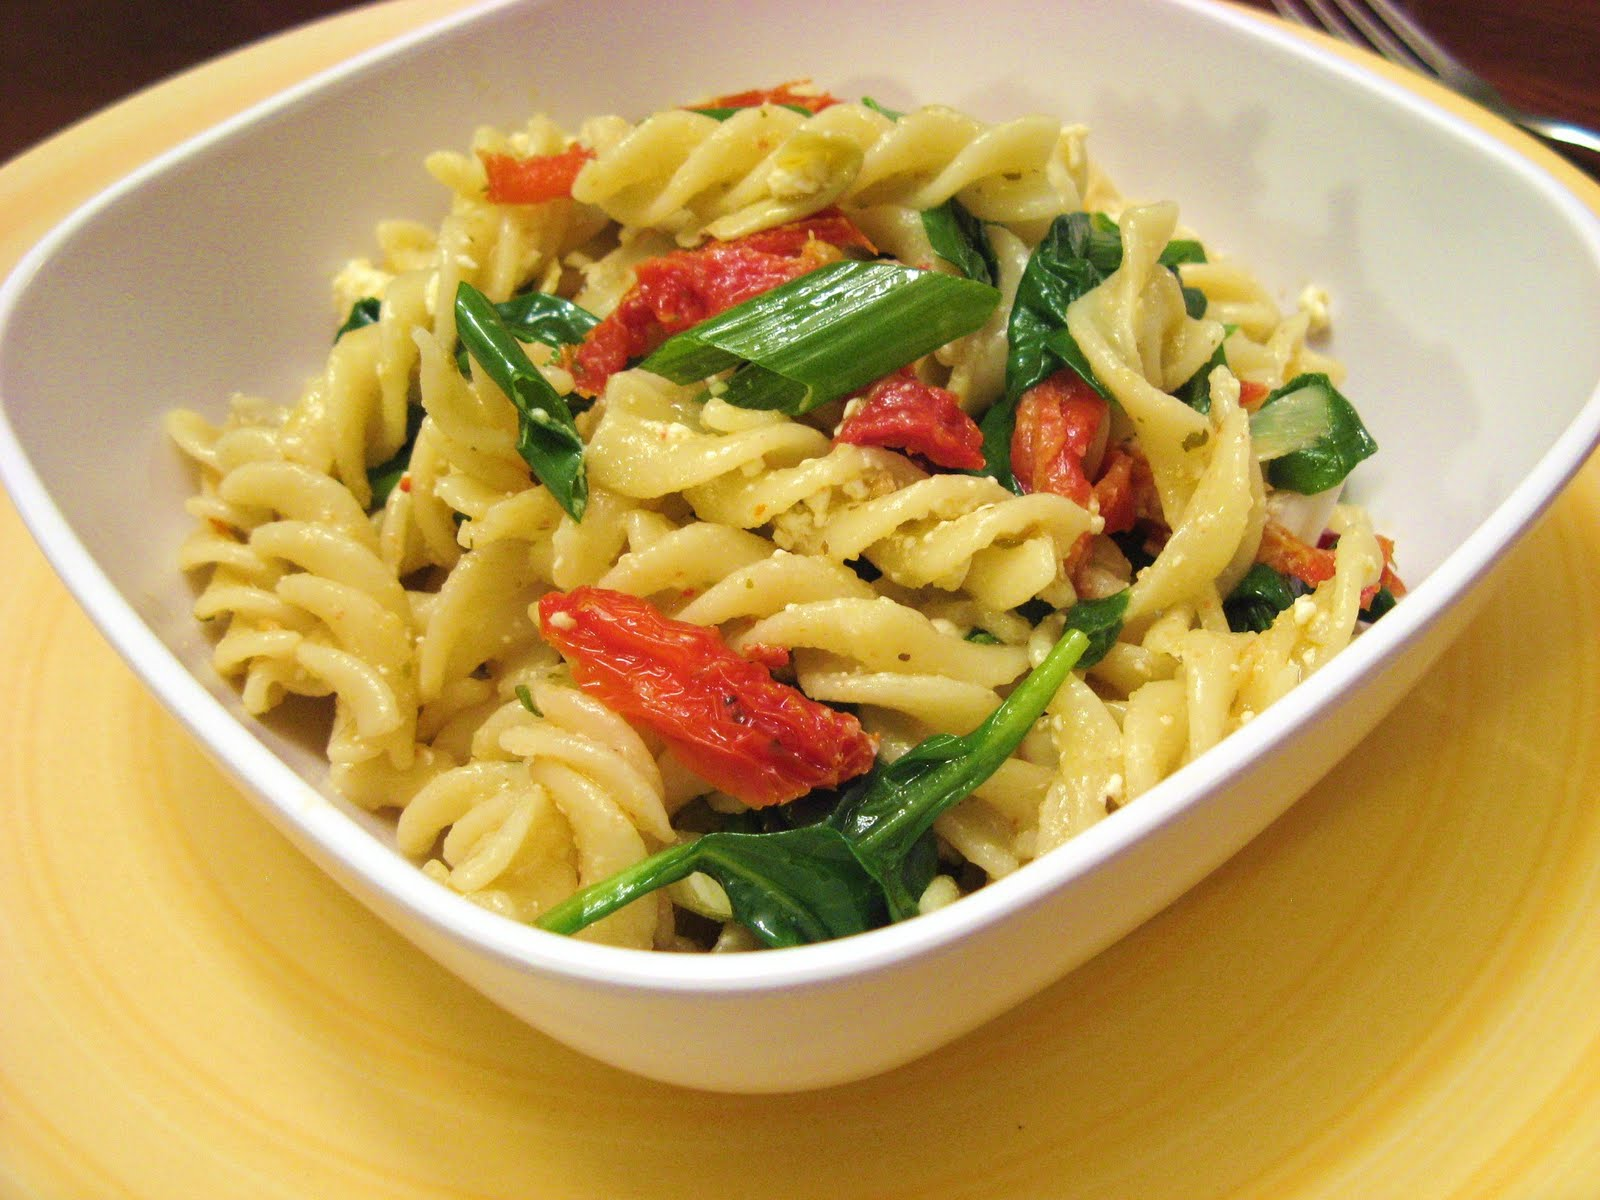 ... -Fed Newlyweds: Pasta with Artichokes, Sundried Tomatoes, and Spinach